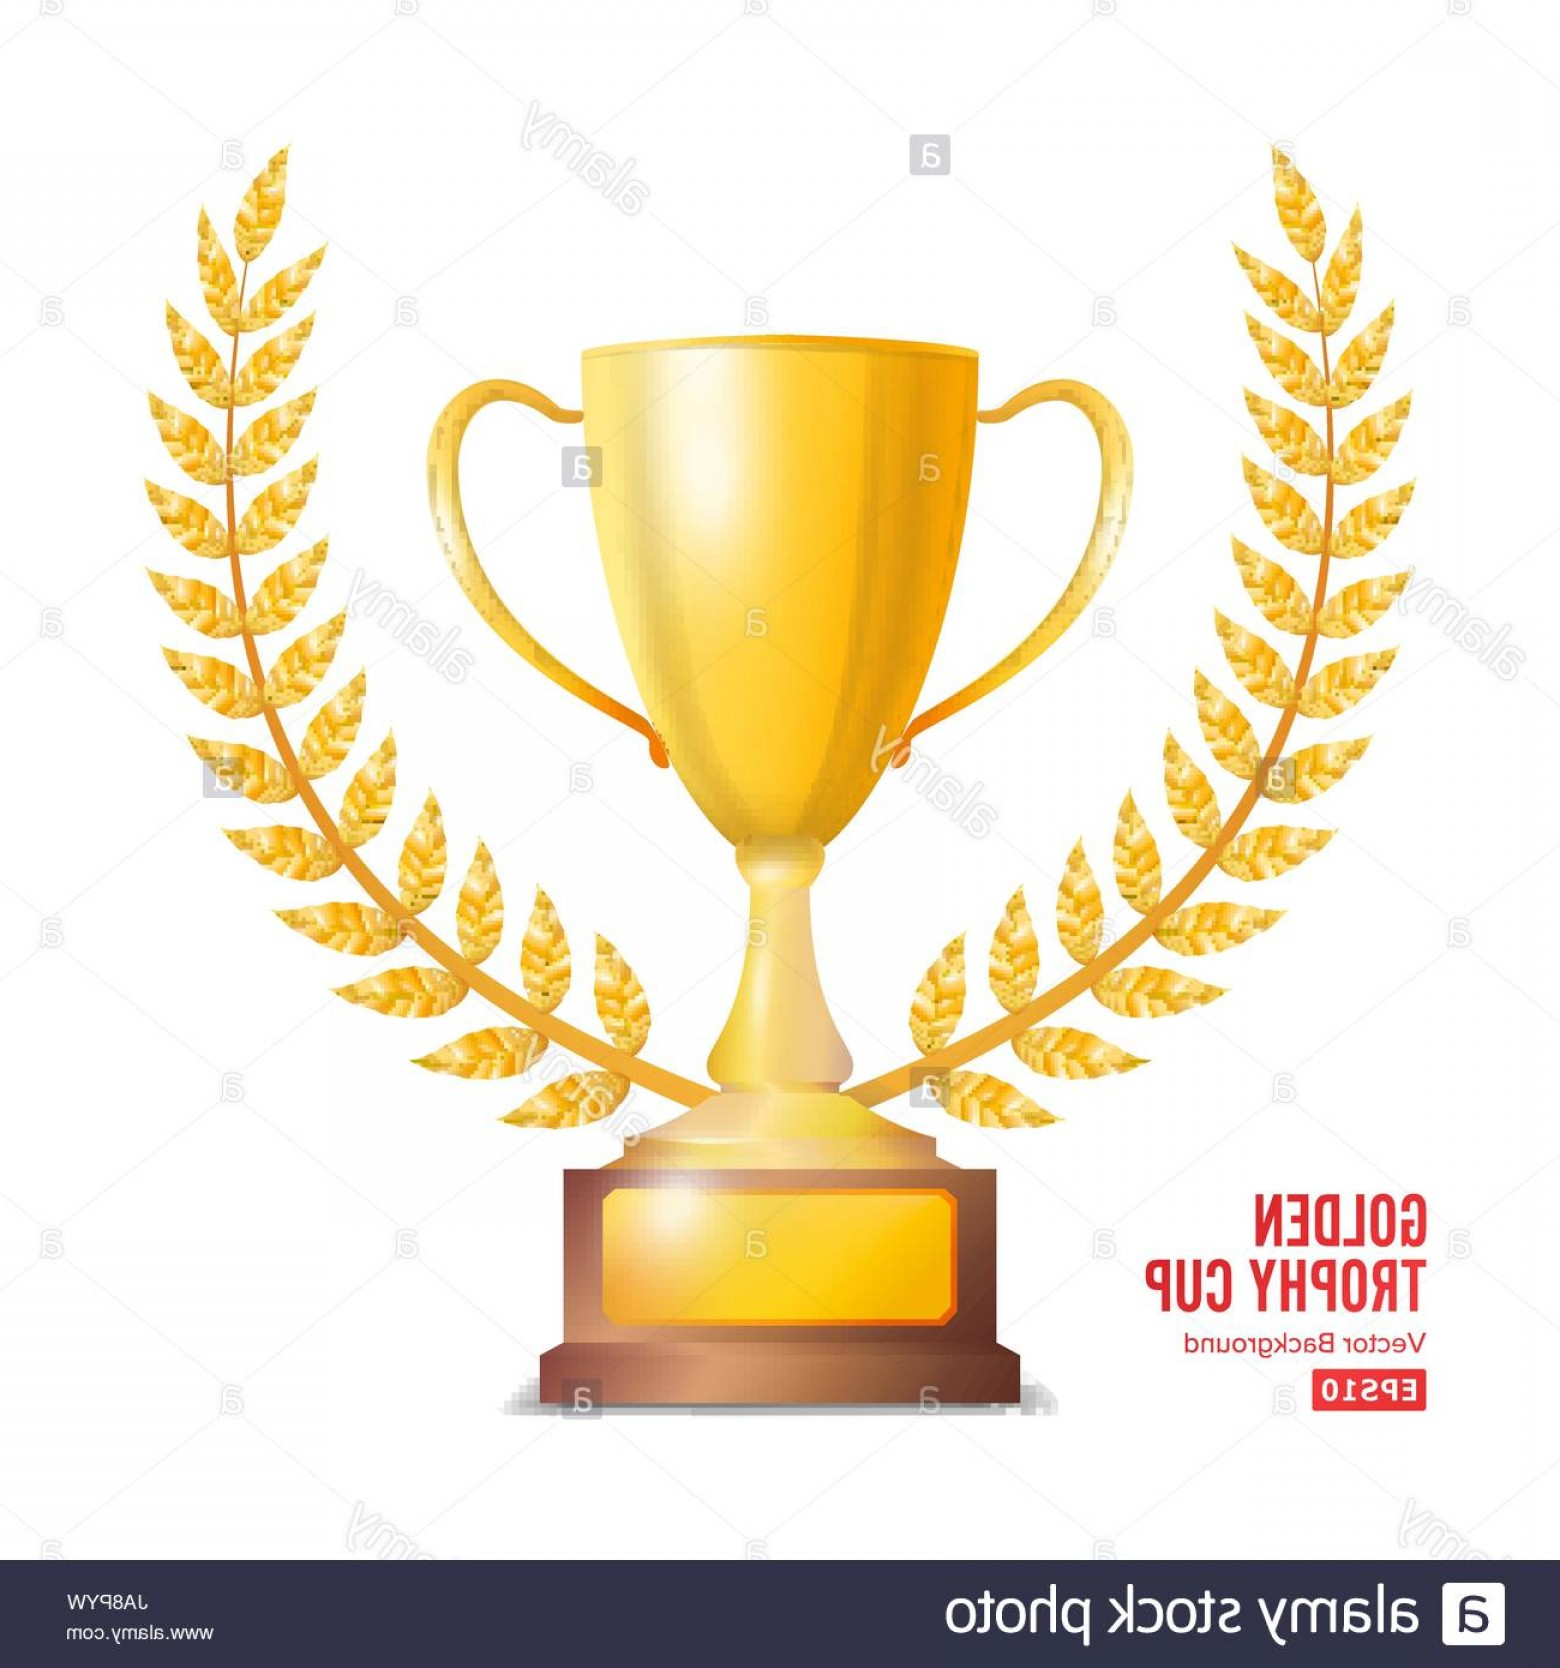 Gold Trophy Vector: Stock Photo Golden Trophy Cup With Laurel Wreath Award Design Winner Concept Isolated